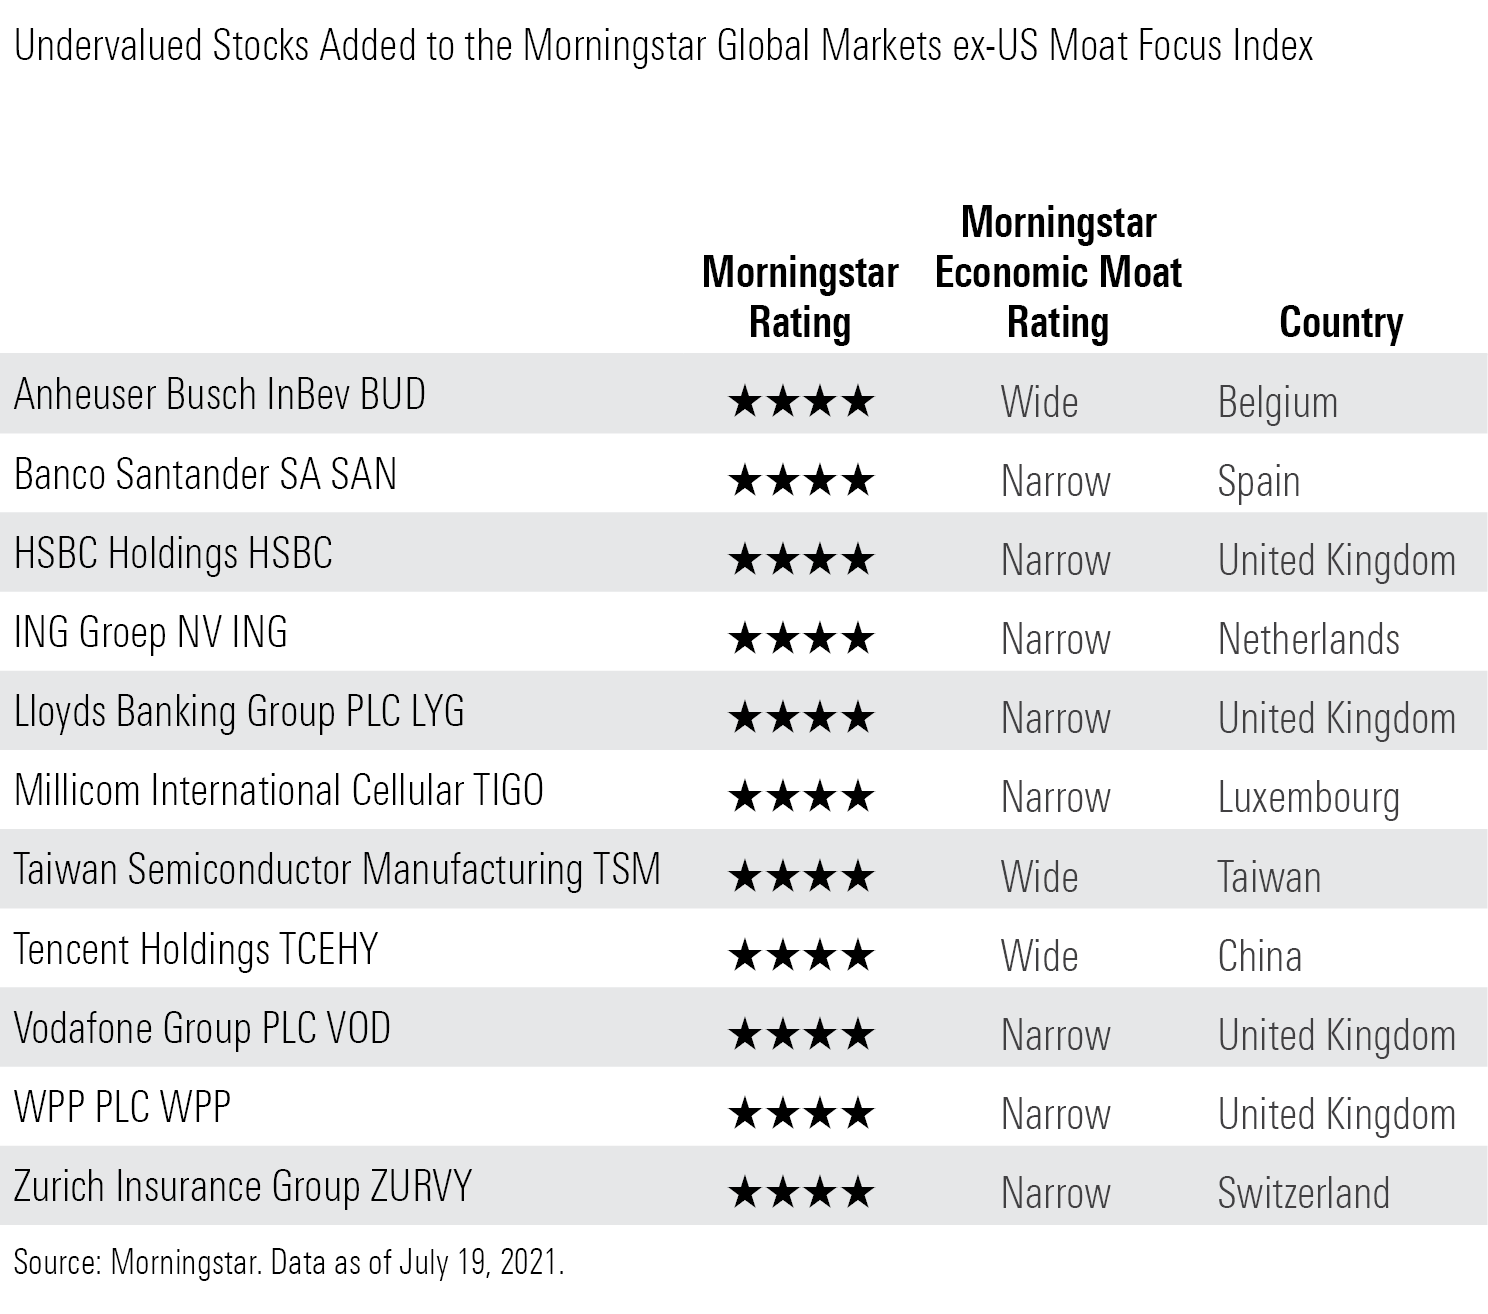 Undervalued stocks added to the Morningstar Global Markets ex-US Moat Focus Index